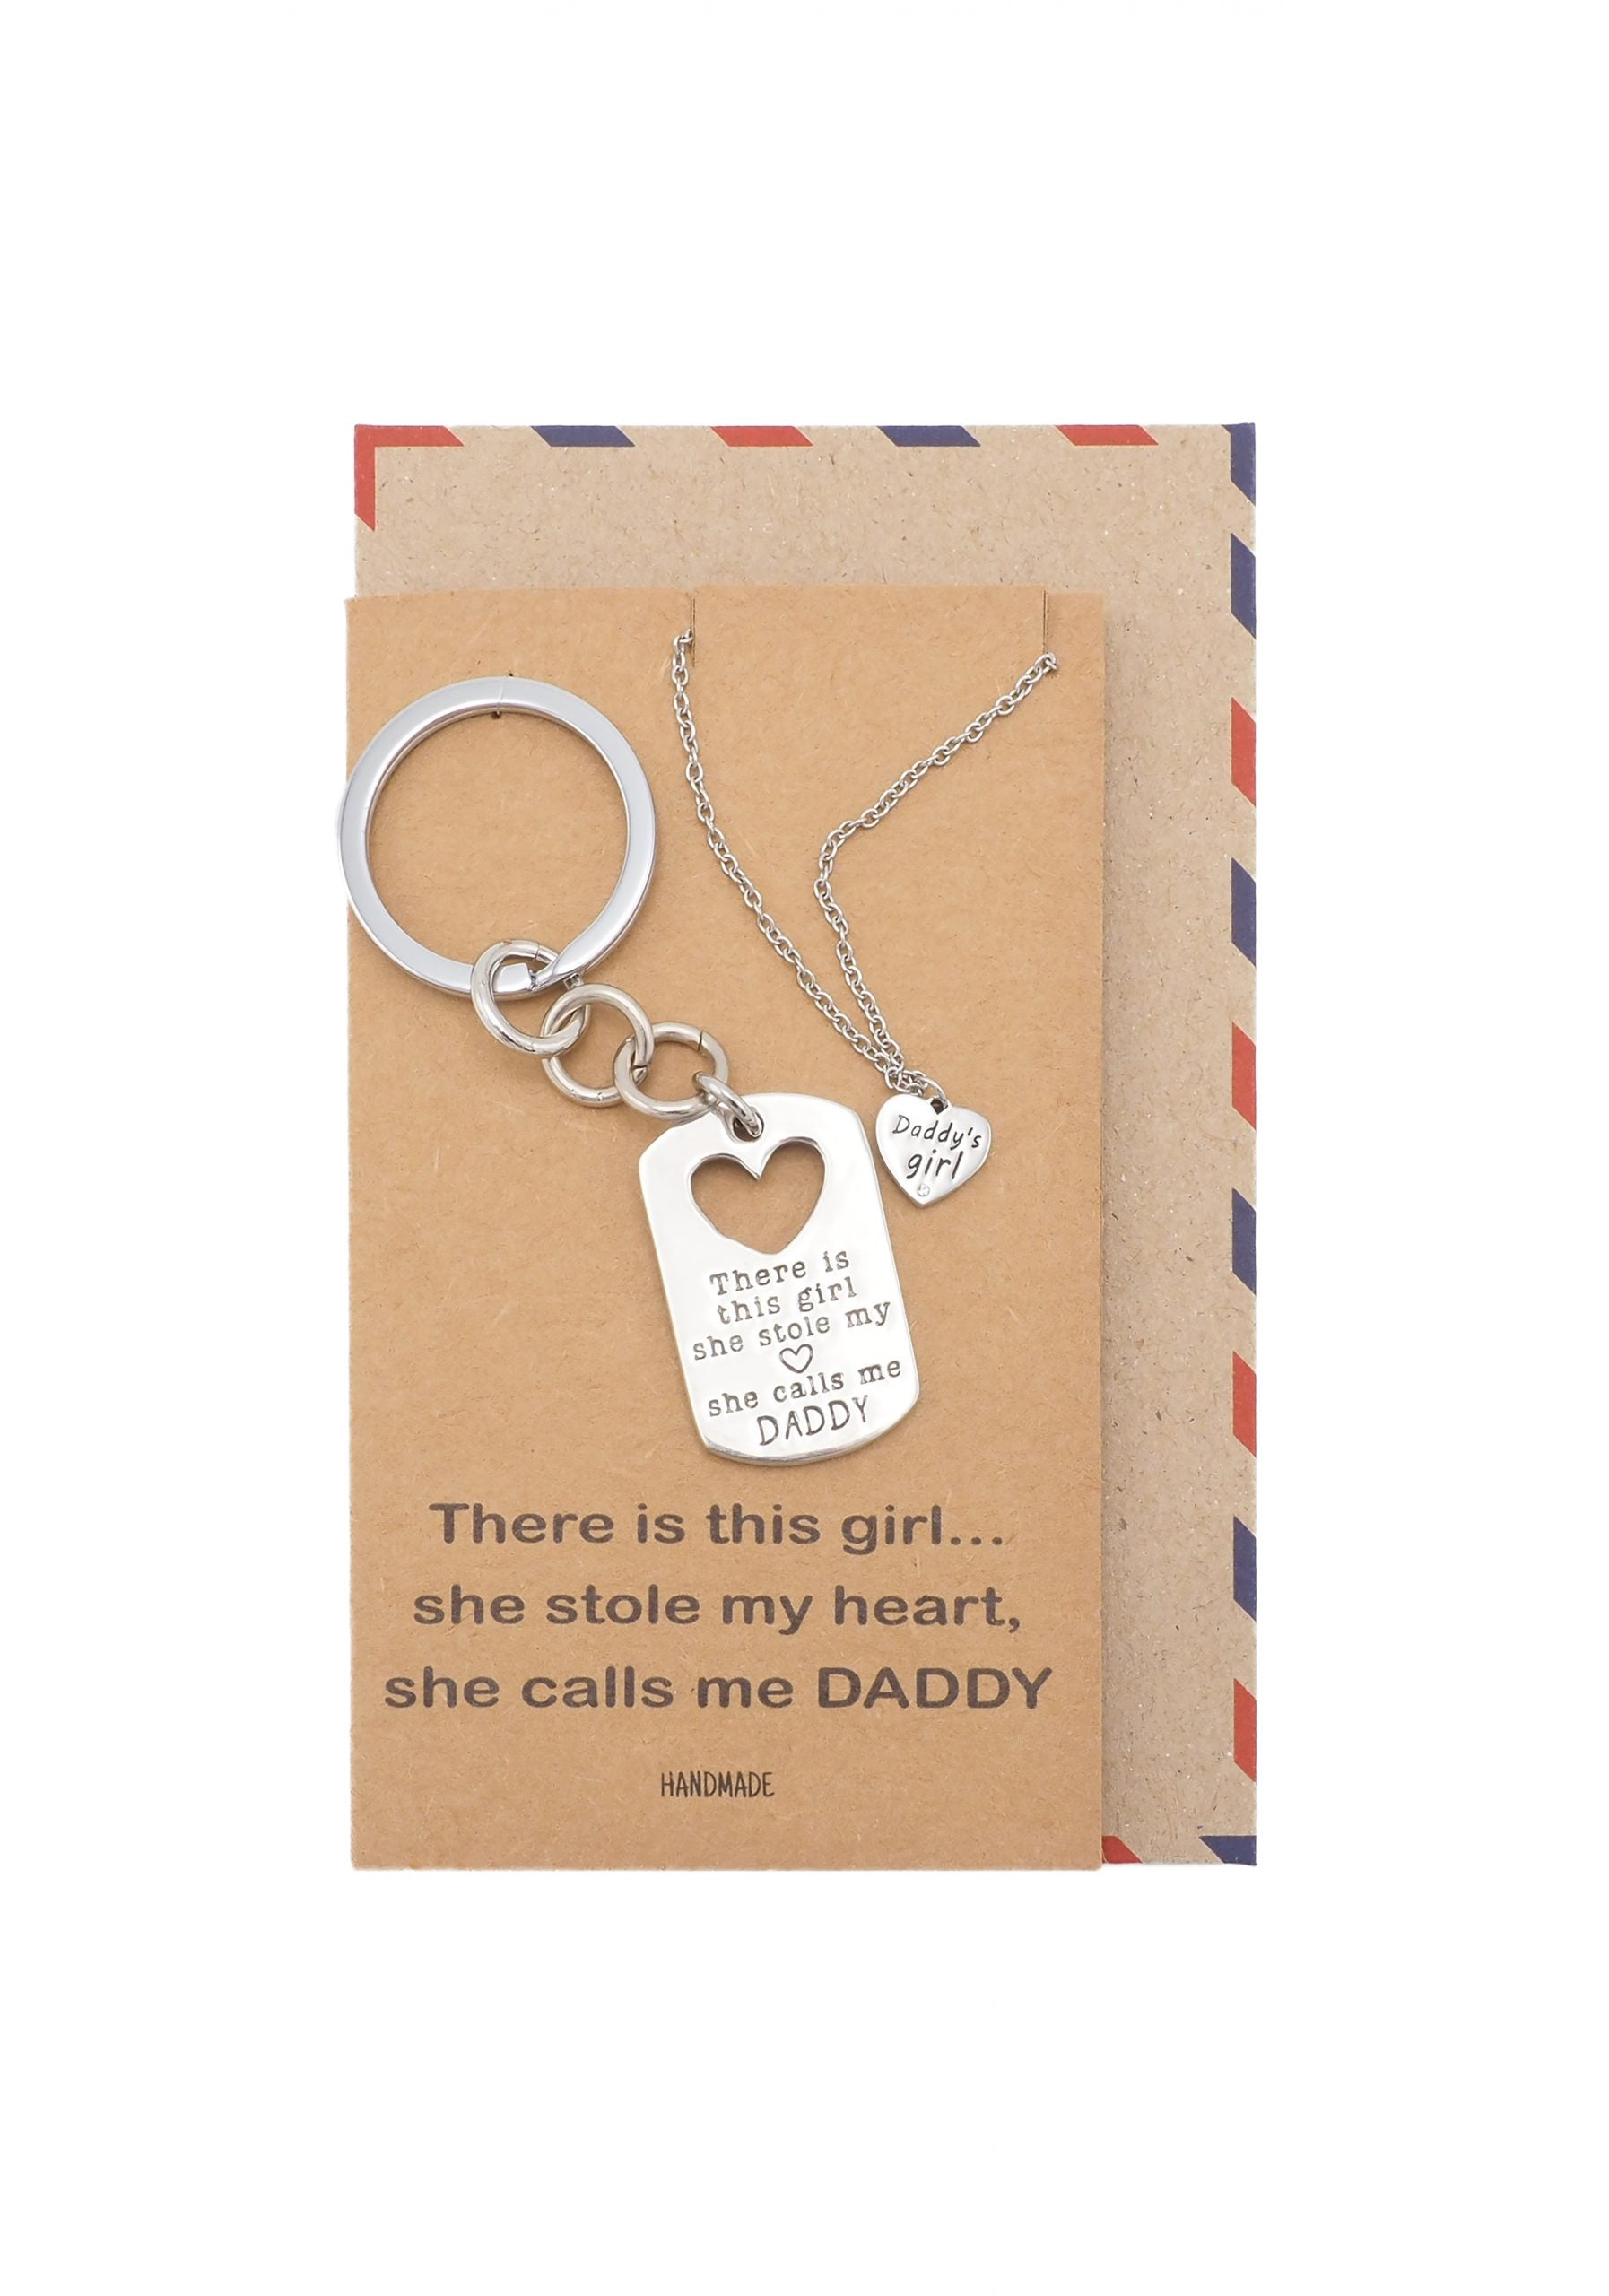 Earl Daddy's Girl Set, Engraved Heart Key chain and Necklace, Gift for Father, with Quote Card